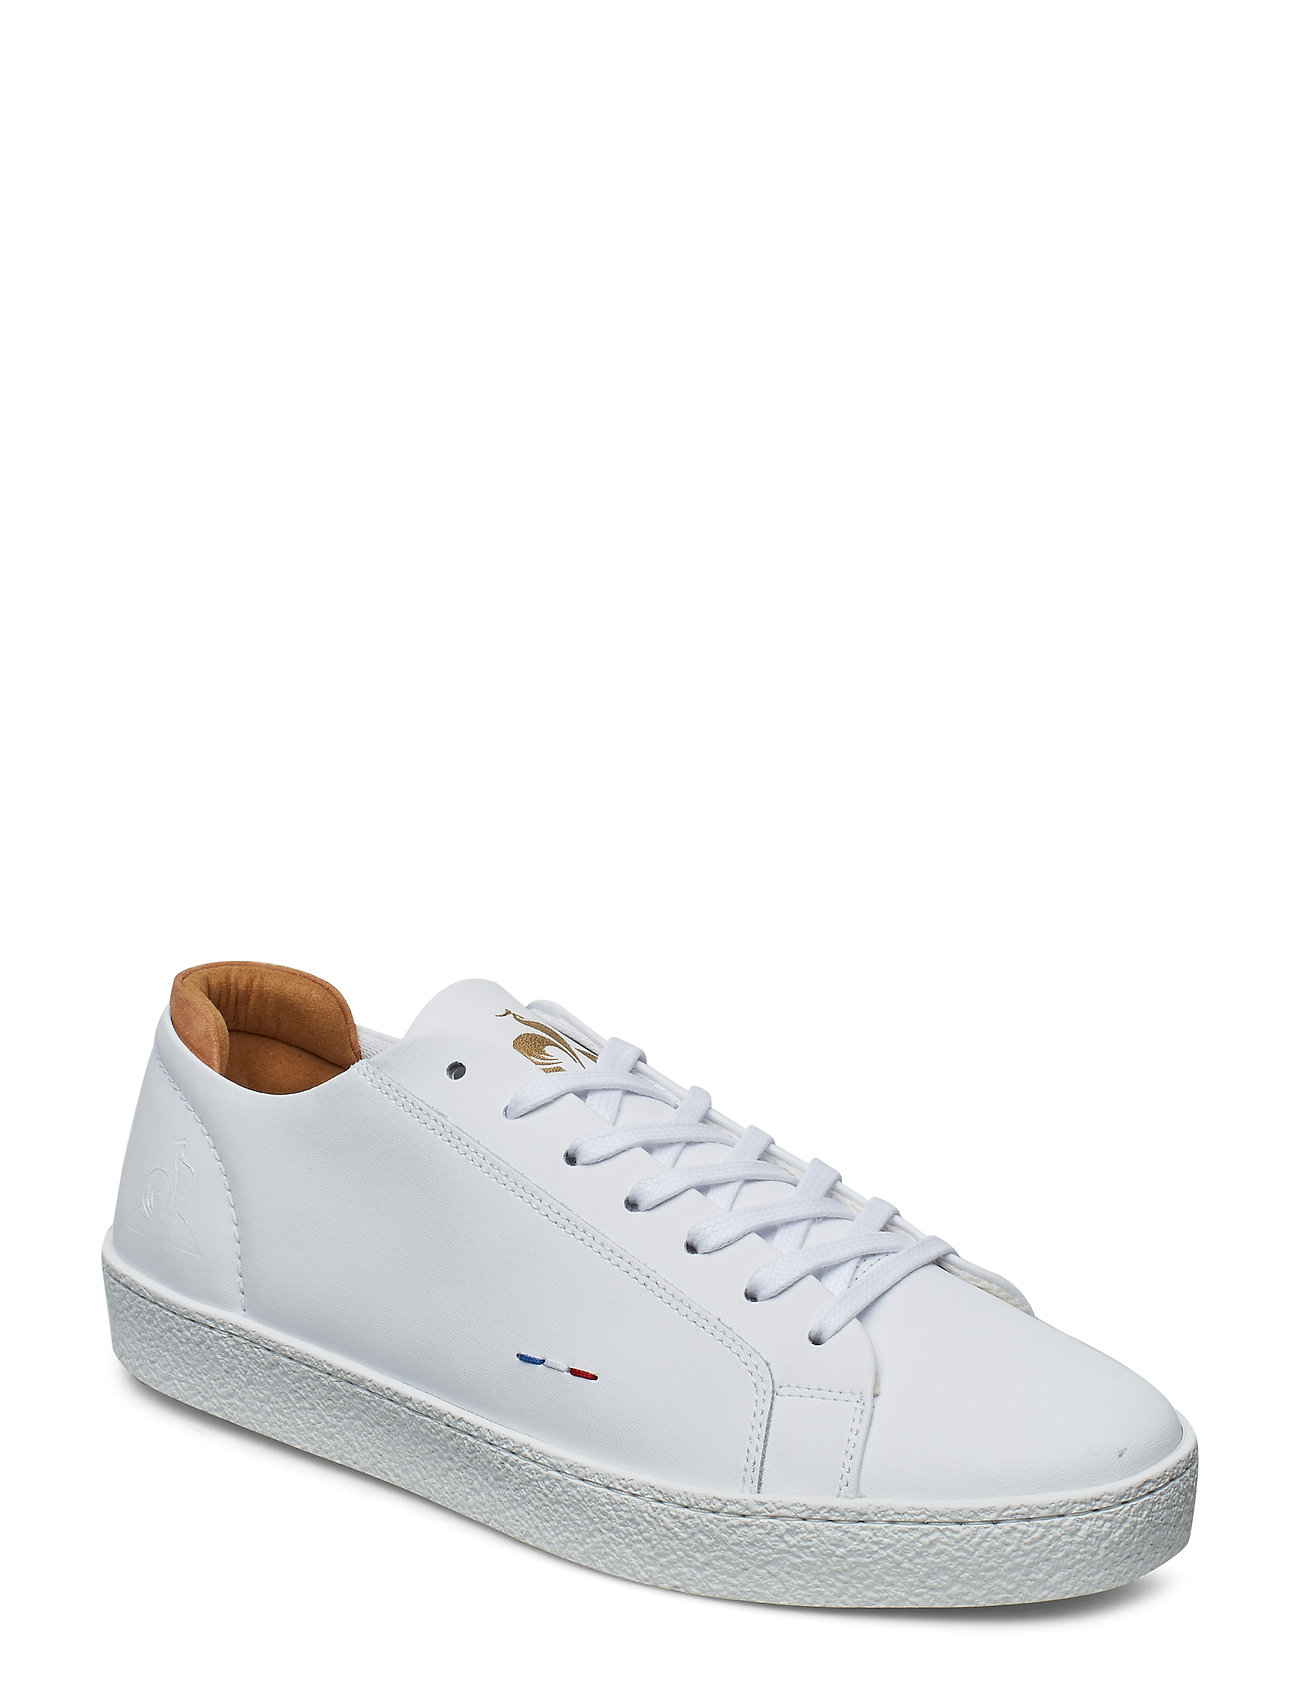 Image of Club Low-top Sneakers Hvid LE COQ SPORTIF (3198434829)